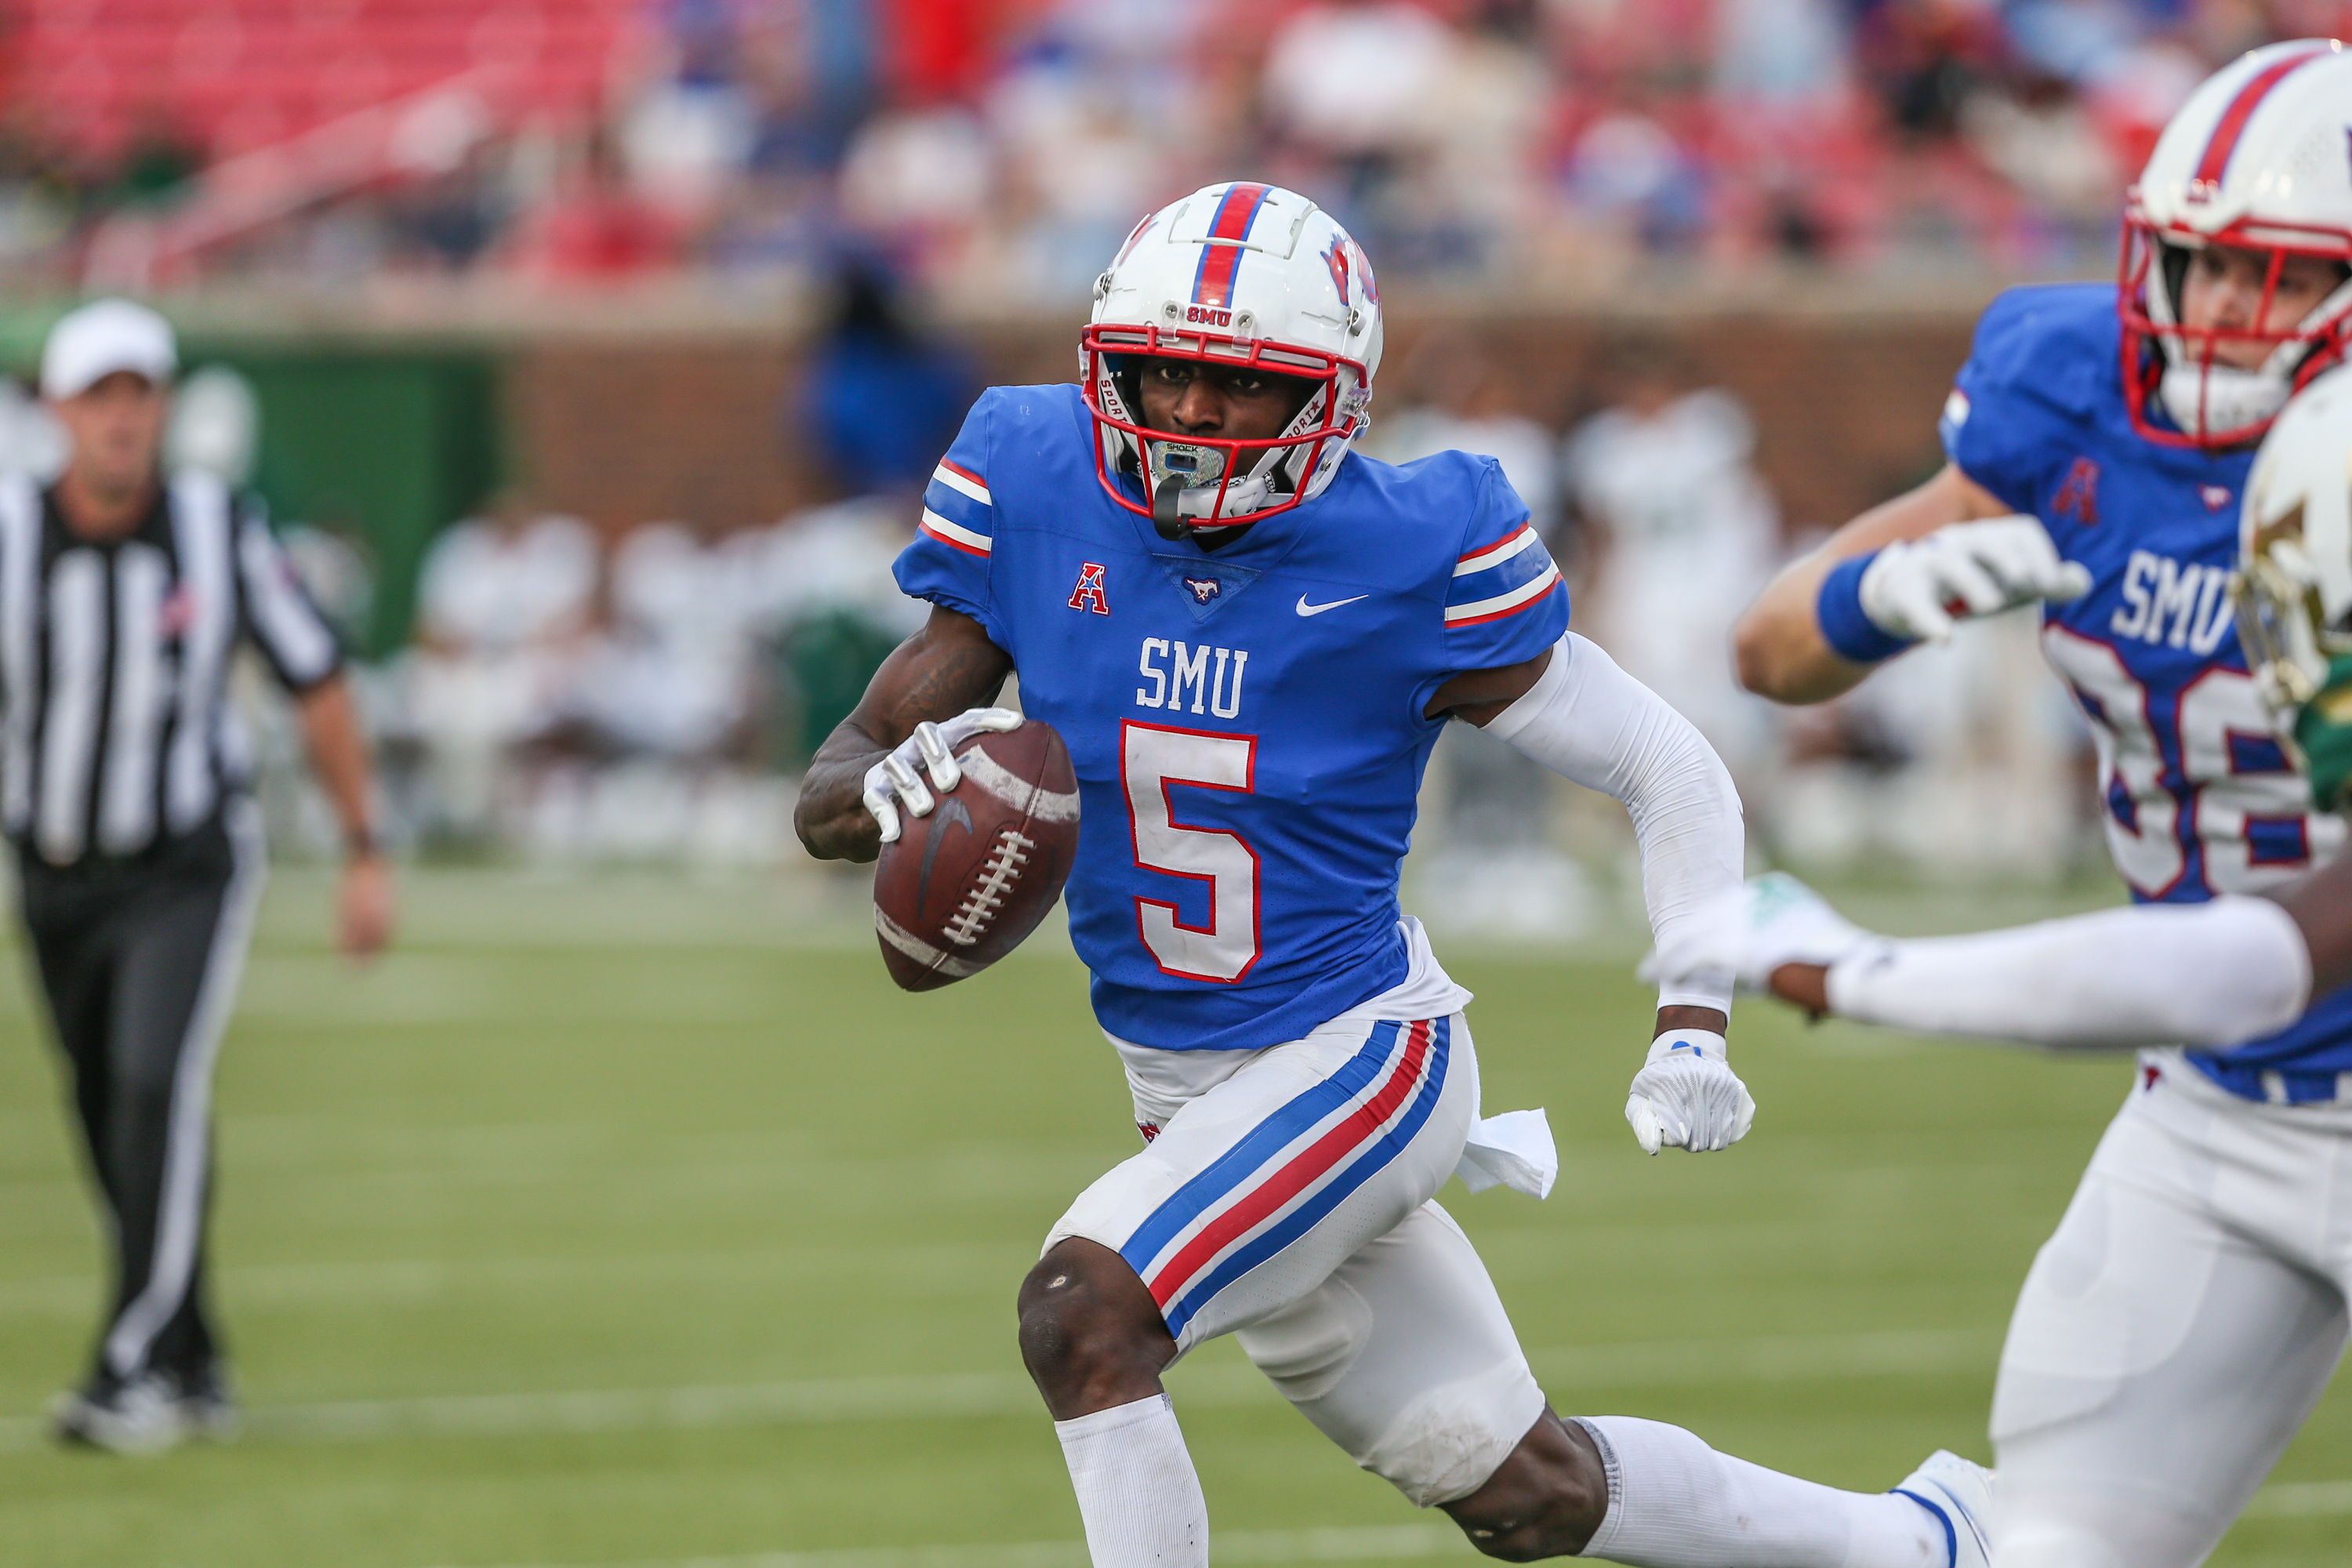 COLLEGE FOOTBALL: OCT 02 USF at SMU